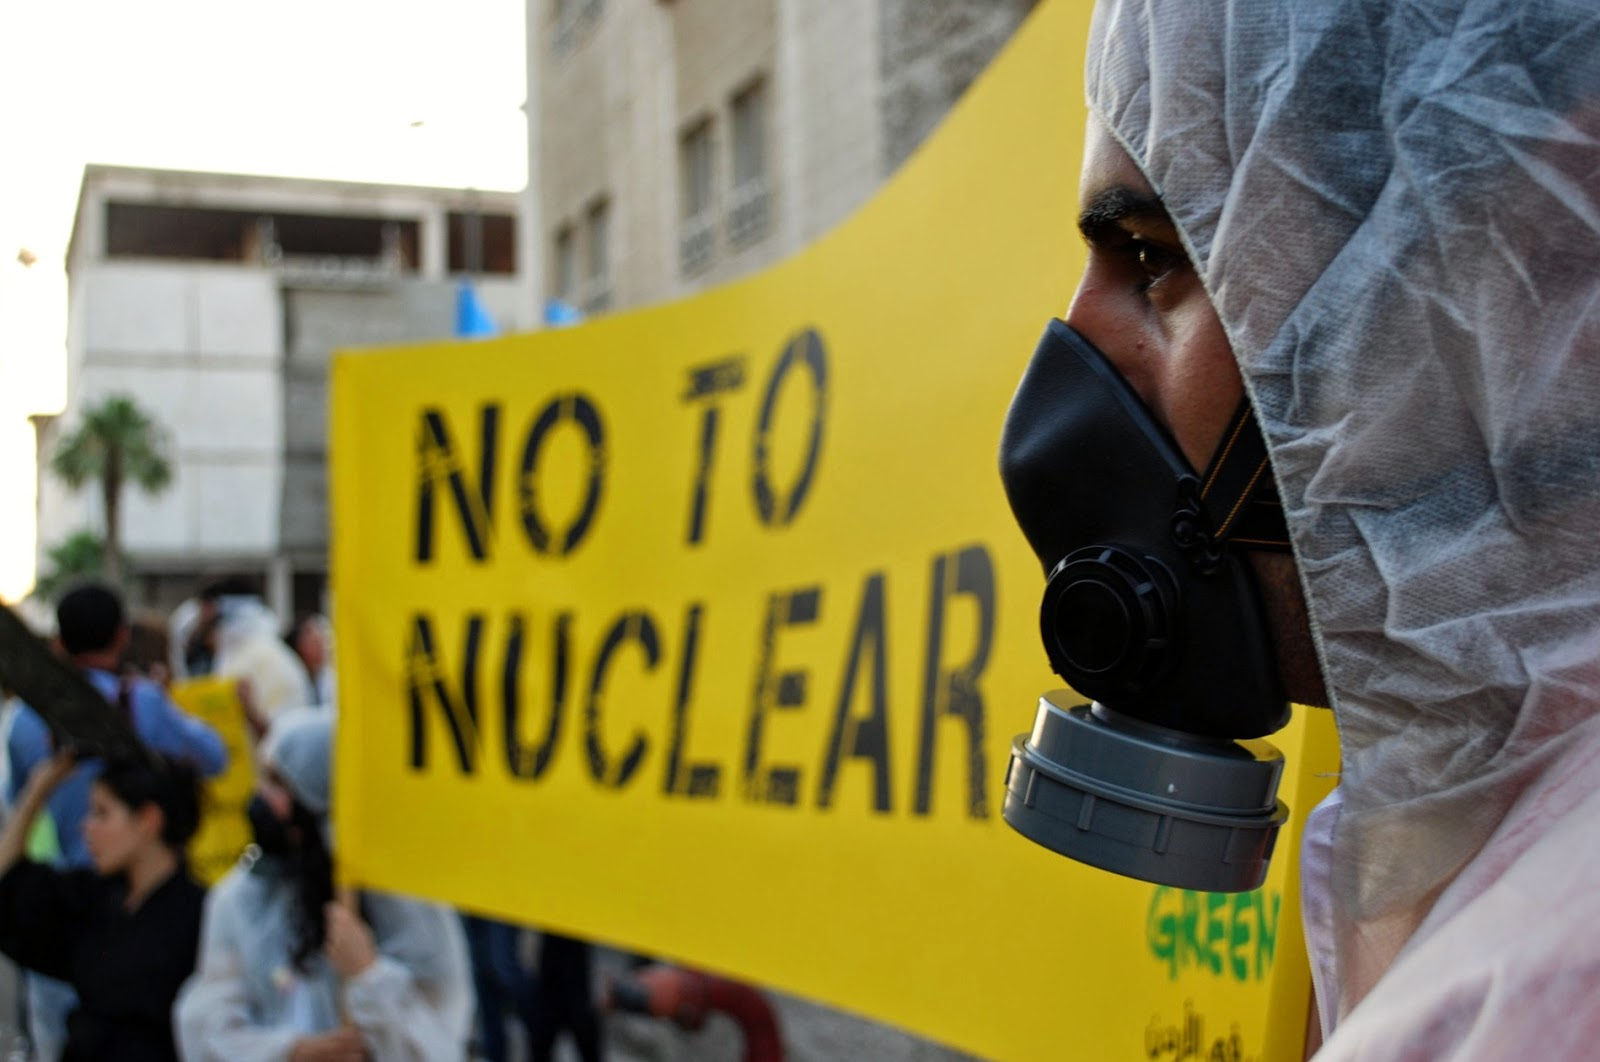 Voters split over nuclear power